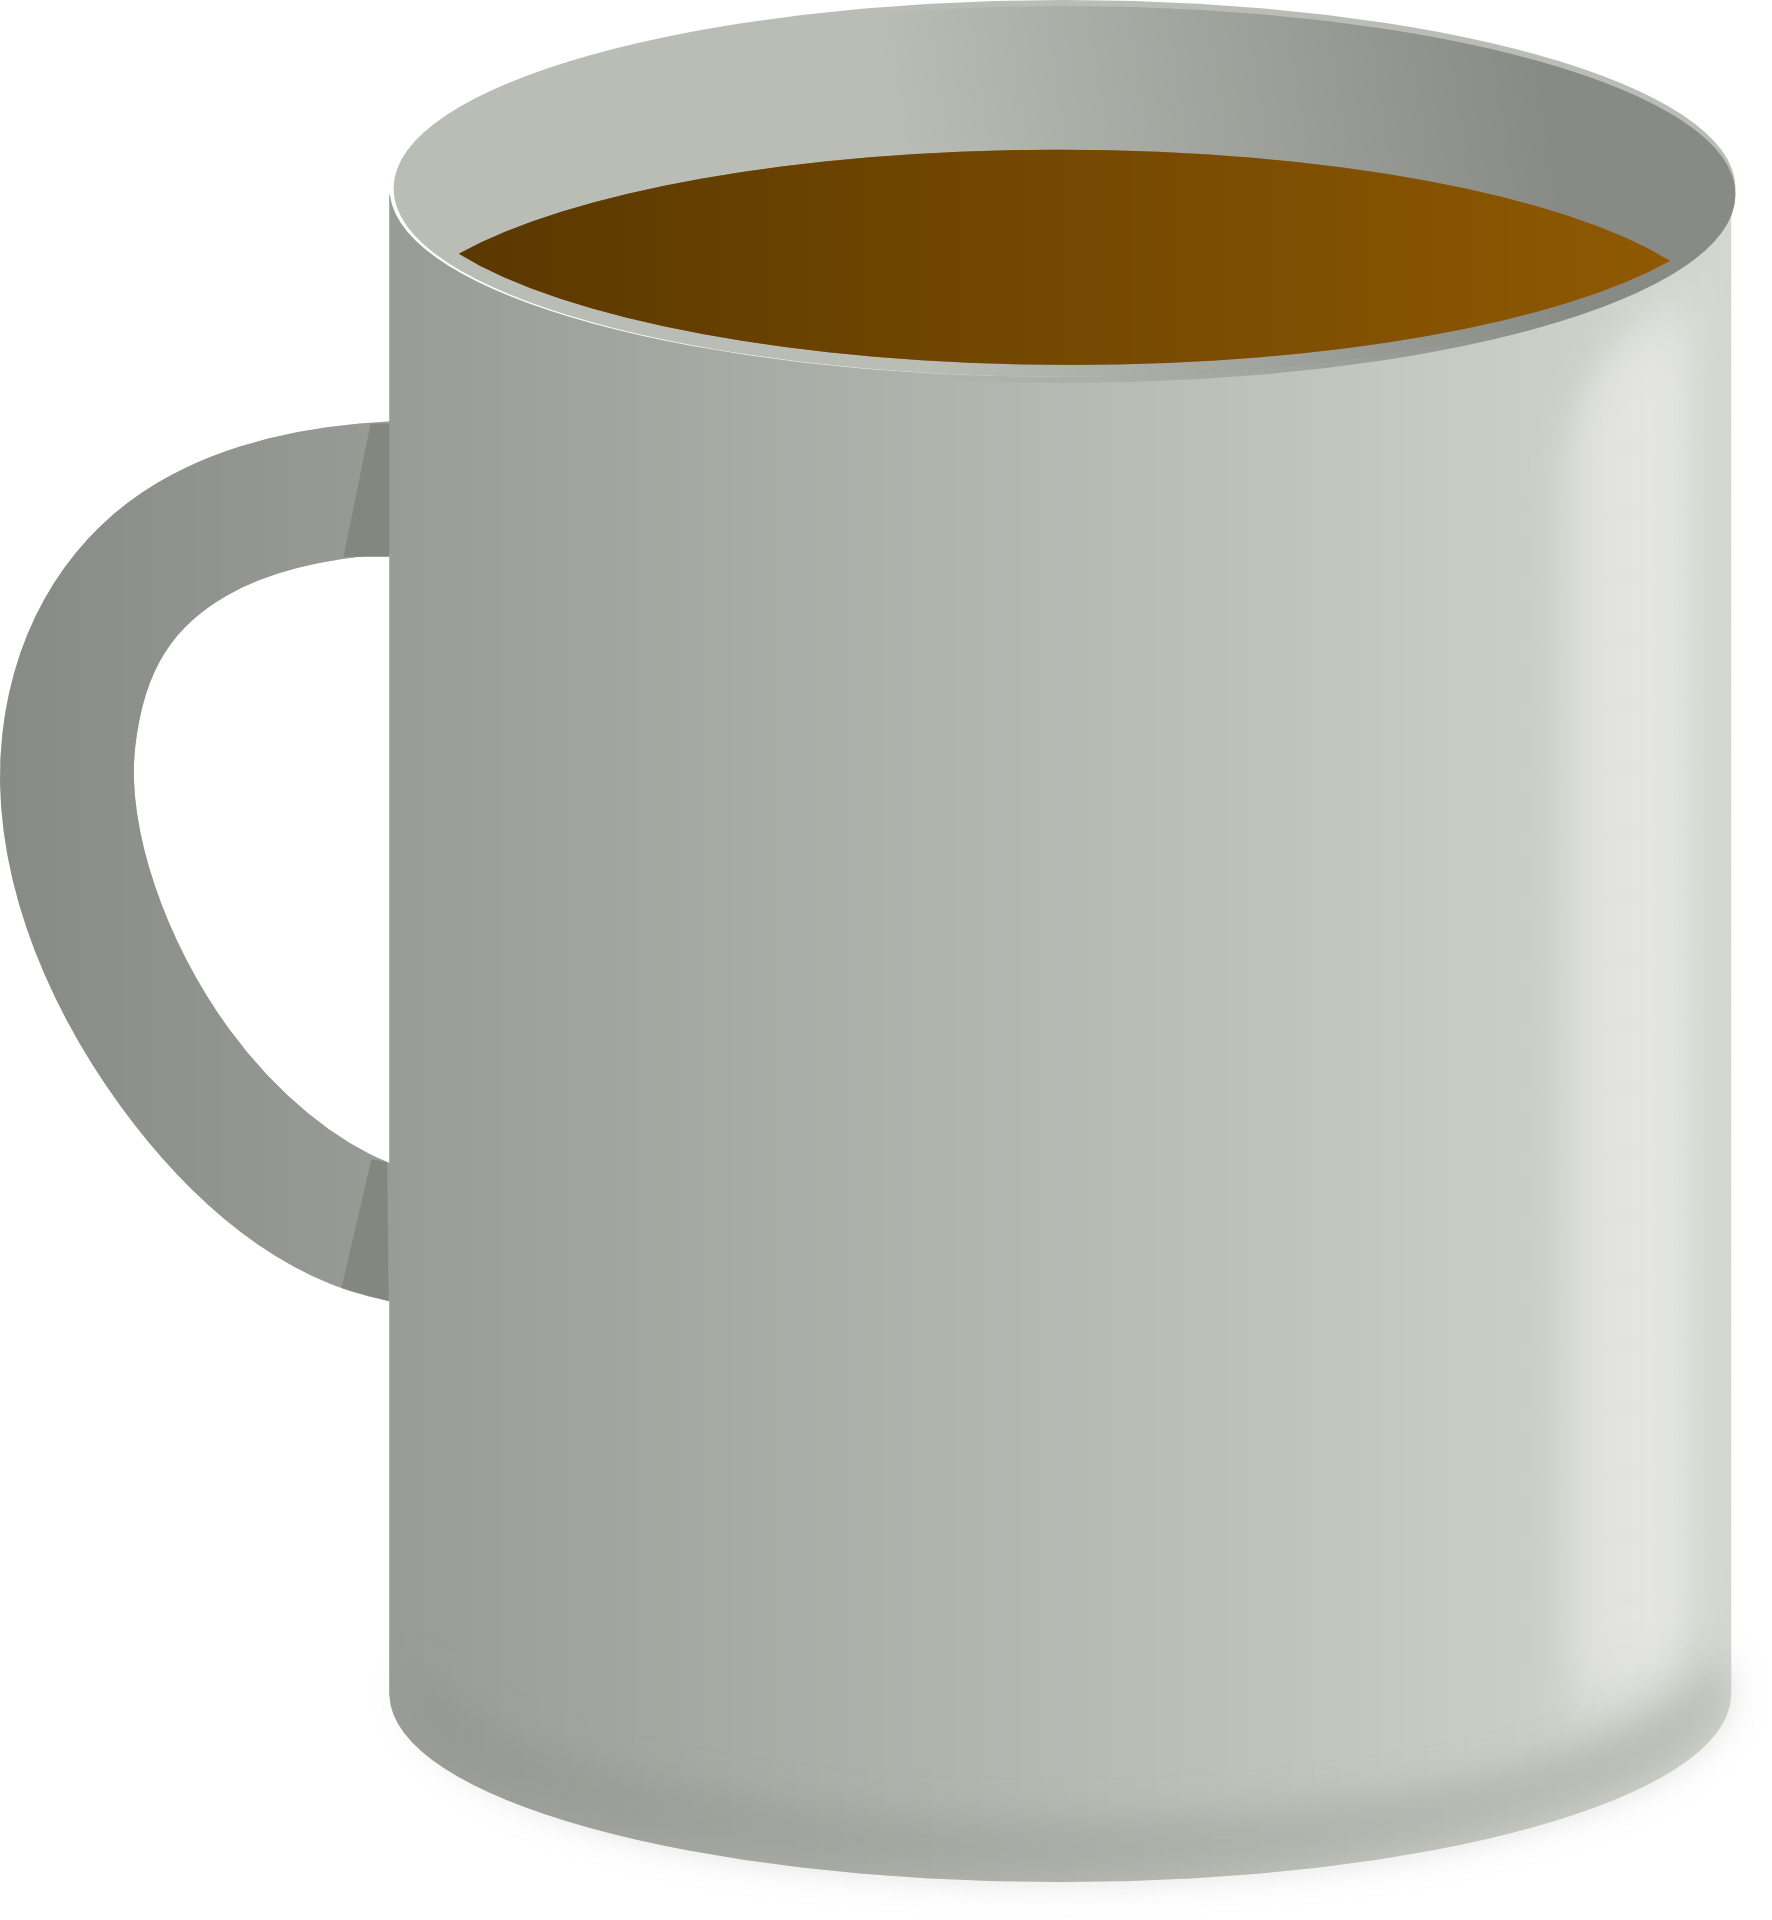 coffee in the white coffee mug clipart free image https pixy org licence php